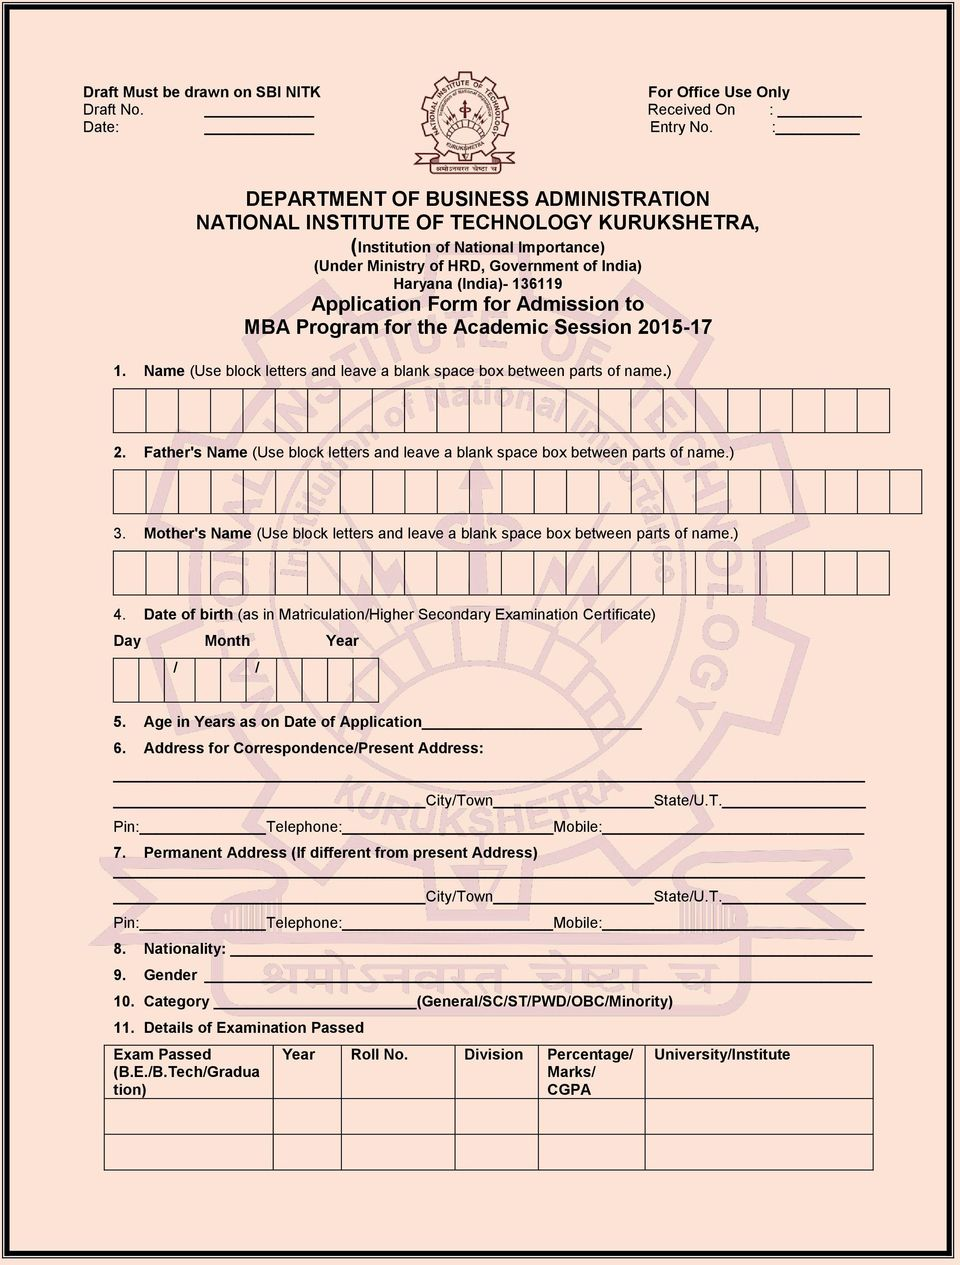 Application Form for Admission to MBA Program for the Academic Session 2015-17 1. Name (Use block letters and leave a blank space box between parts of name.) 2.